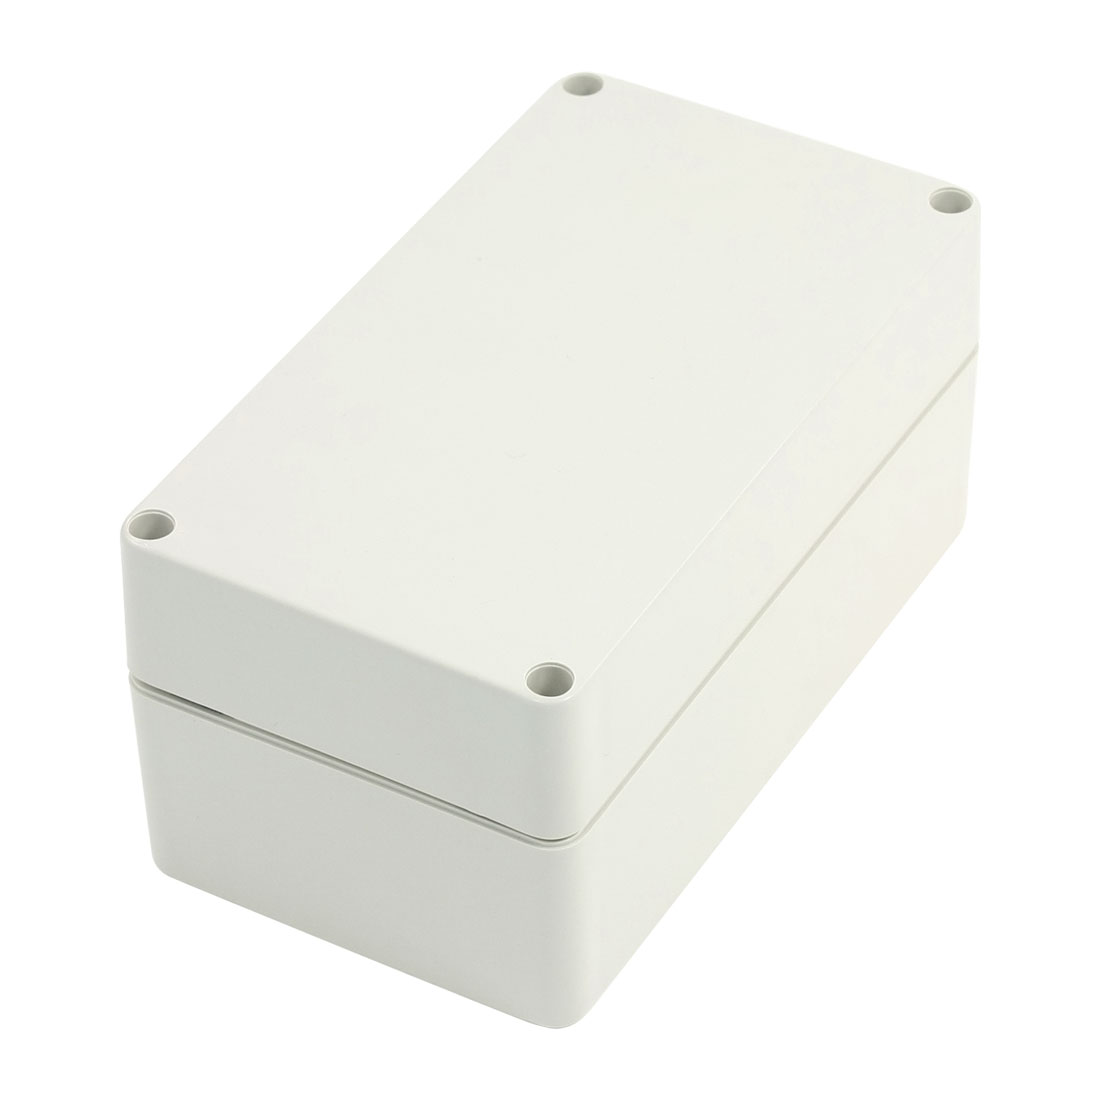 158mmx90mmx75mm Waterproof Plastic Enclosure Case Power Junction Box